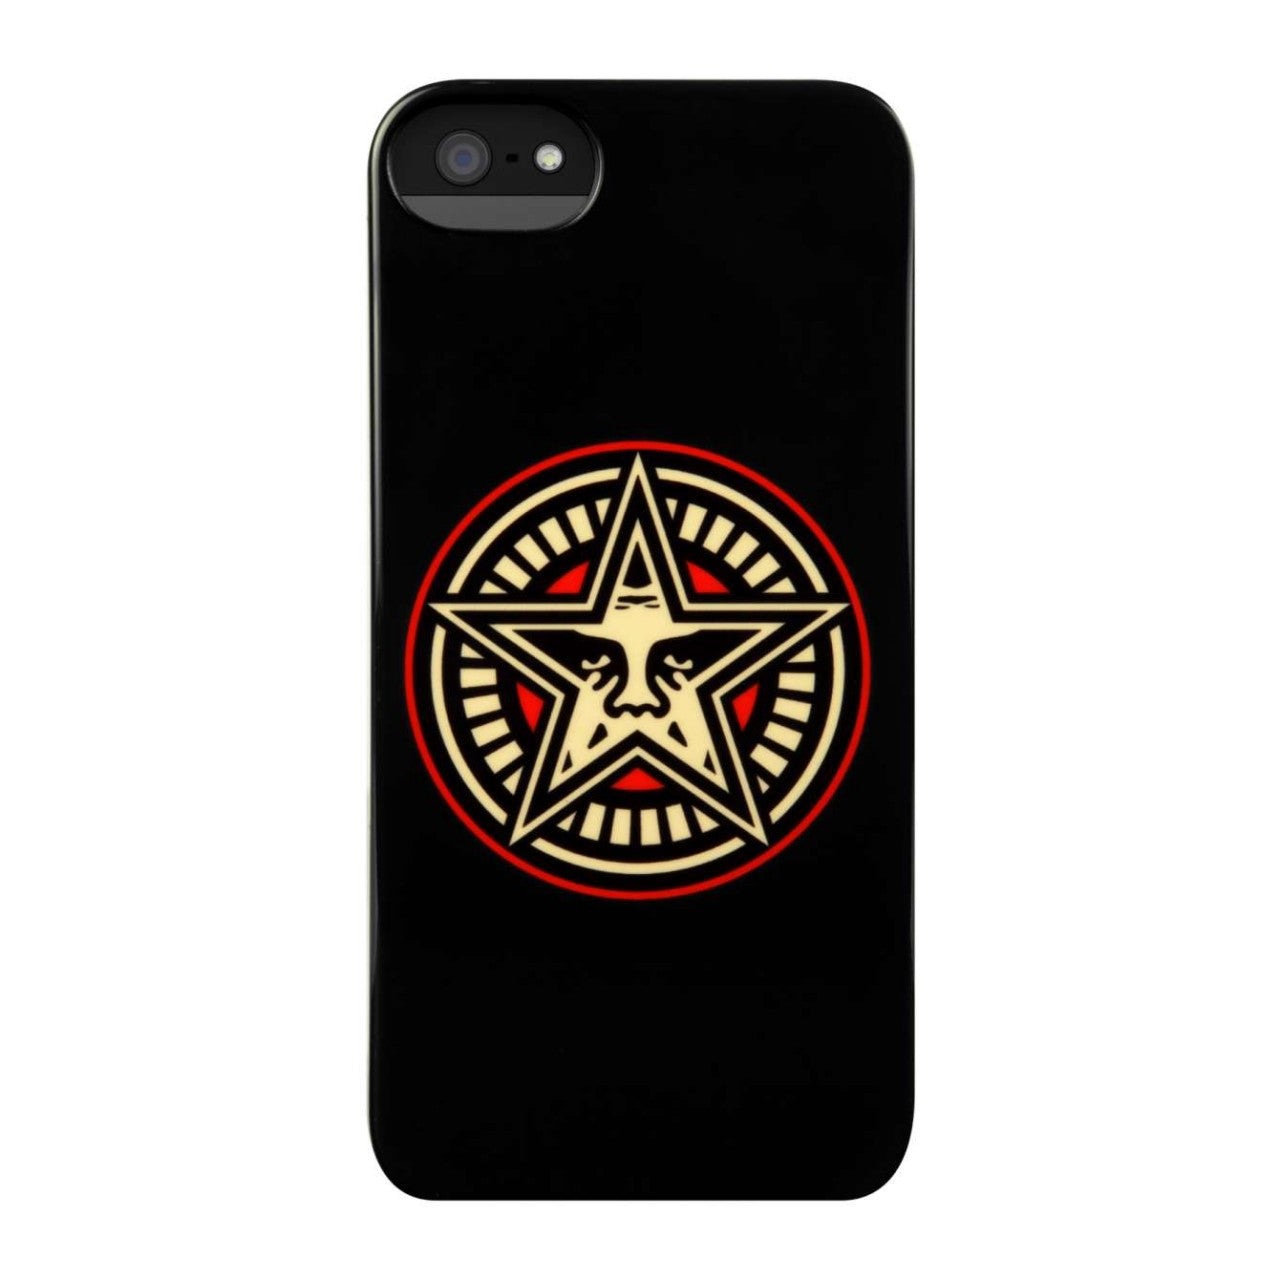 Incase x Shepard Fairey - Star Gear Case for iPhone 5 - The Giant Peach - 1